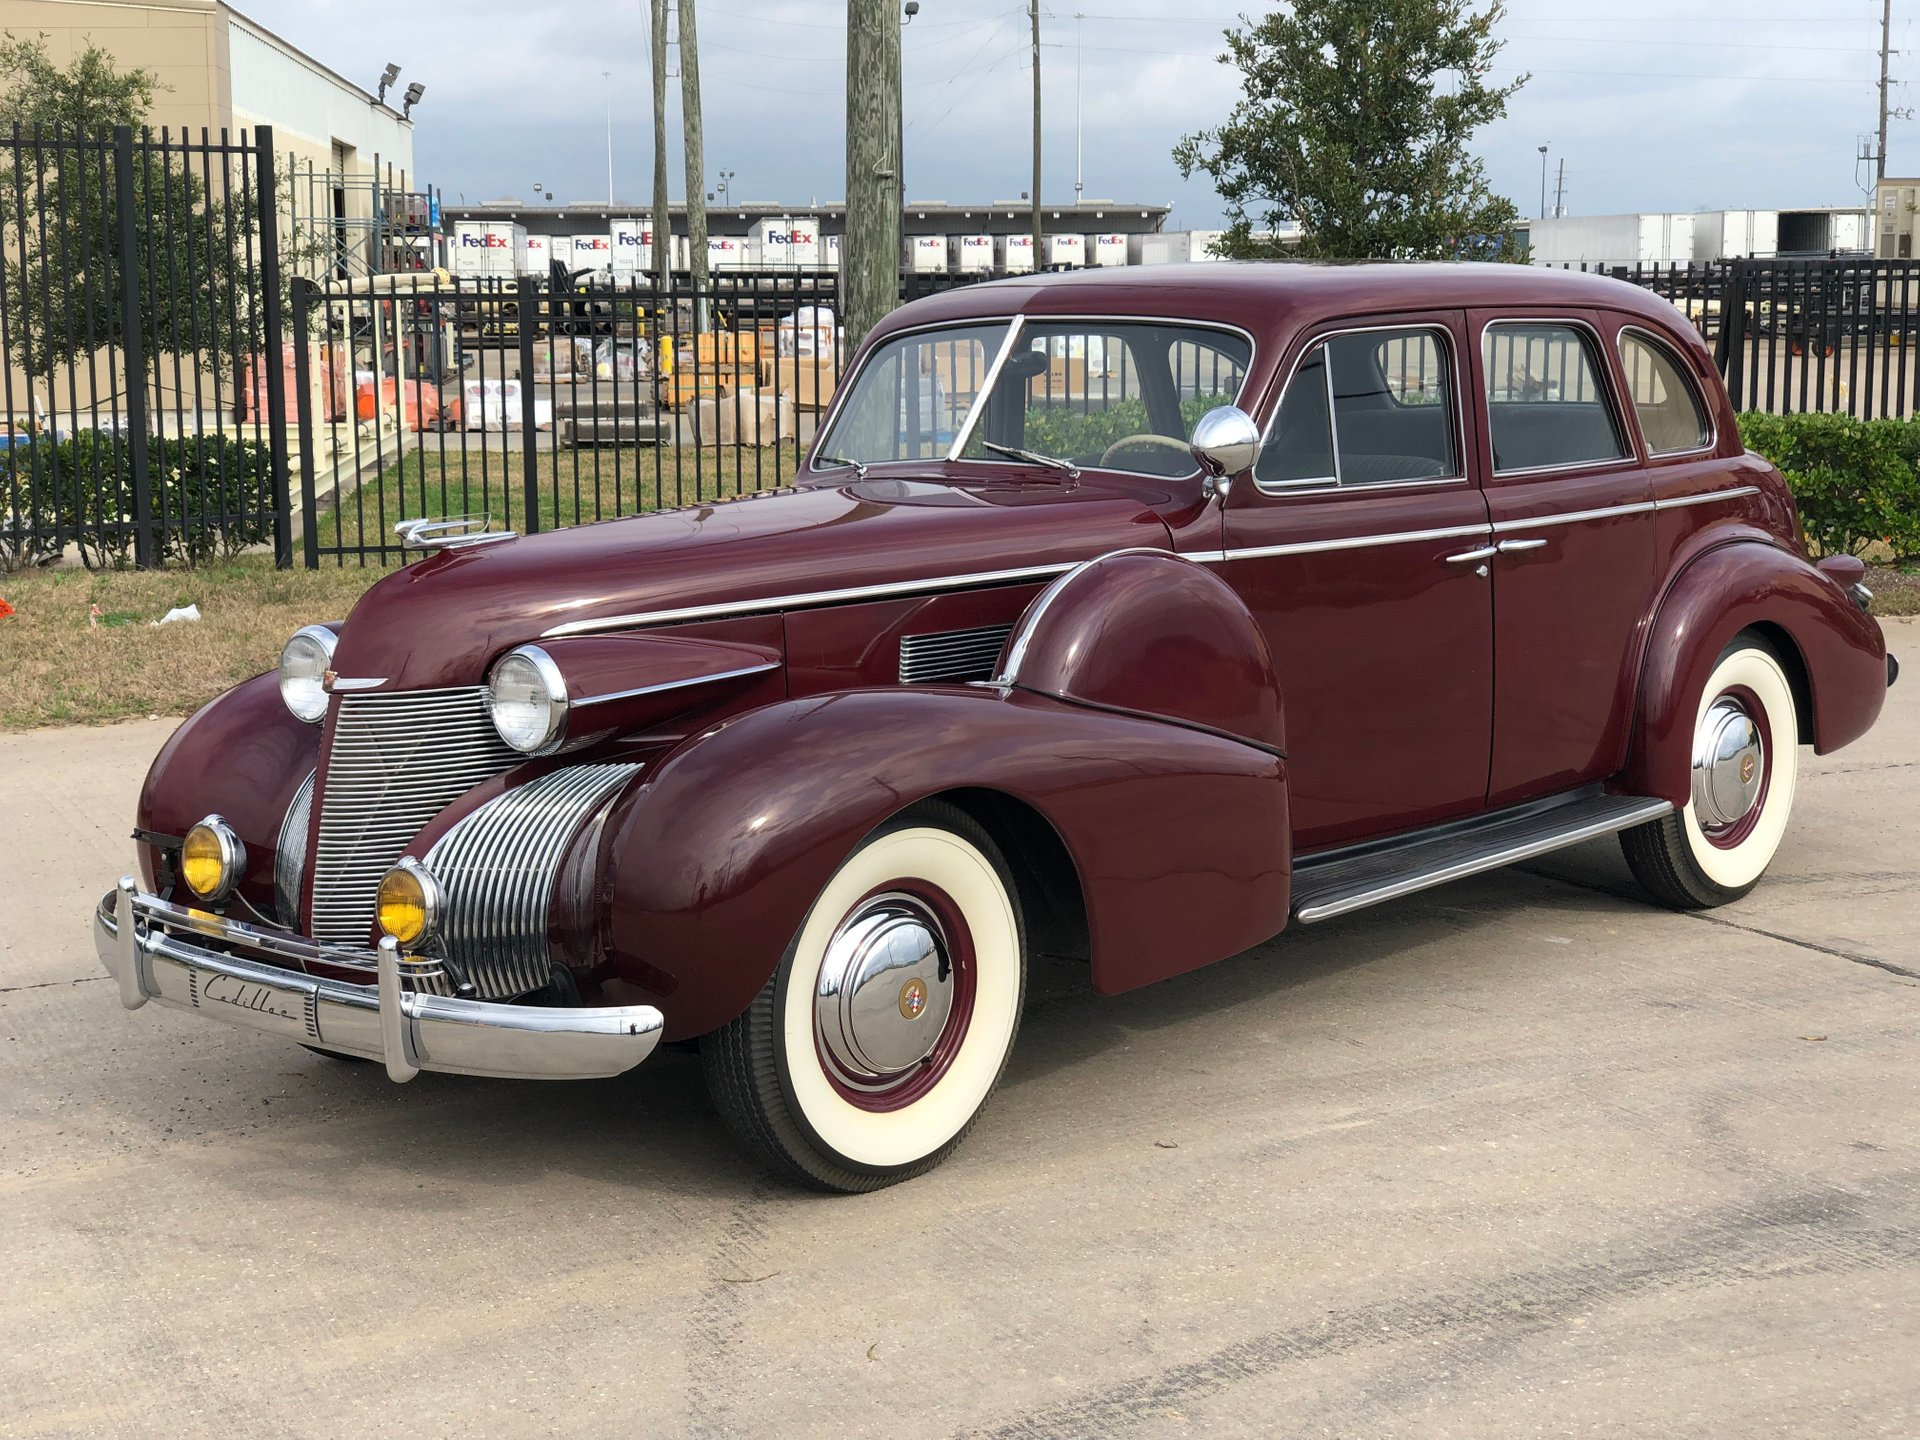 1939 cadillac series 61 touring sedan